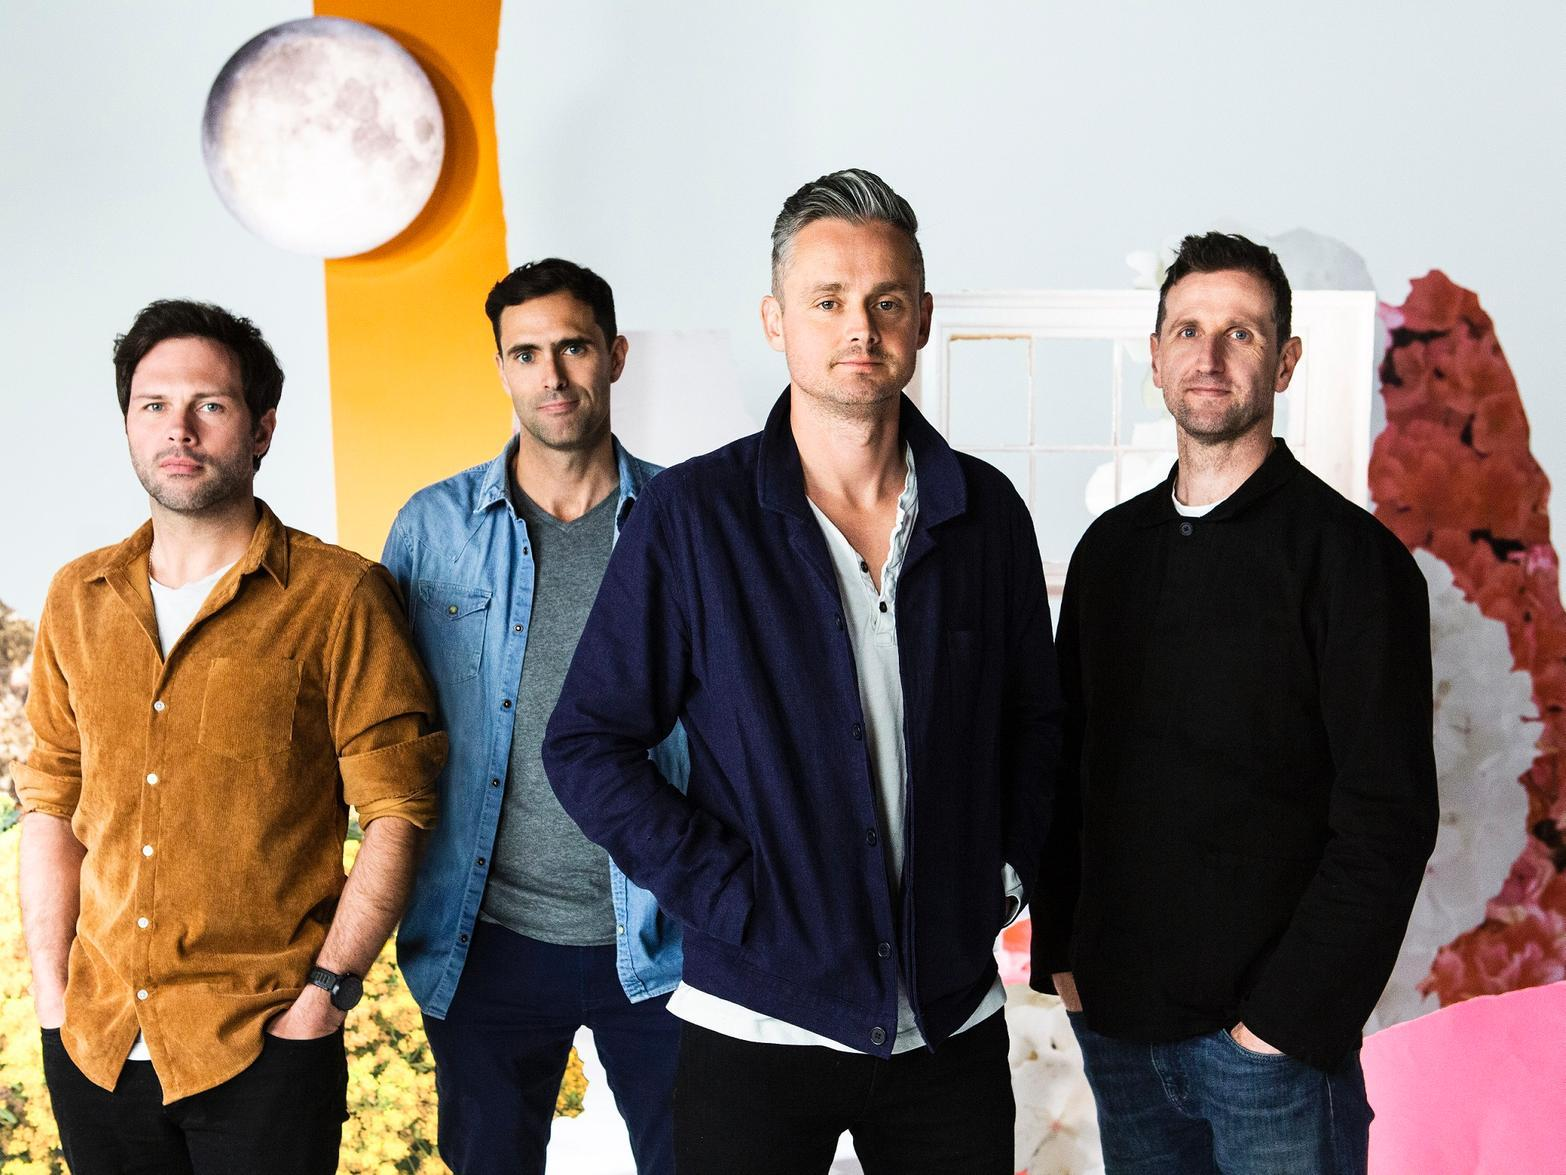 Keane to play headline show at Scarborough Open Air Theatre: Here's how to get tickets